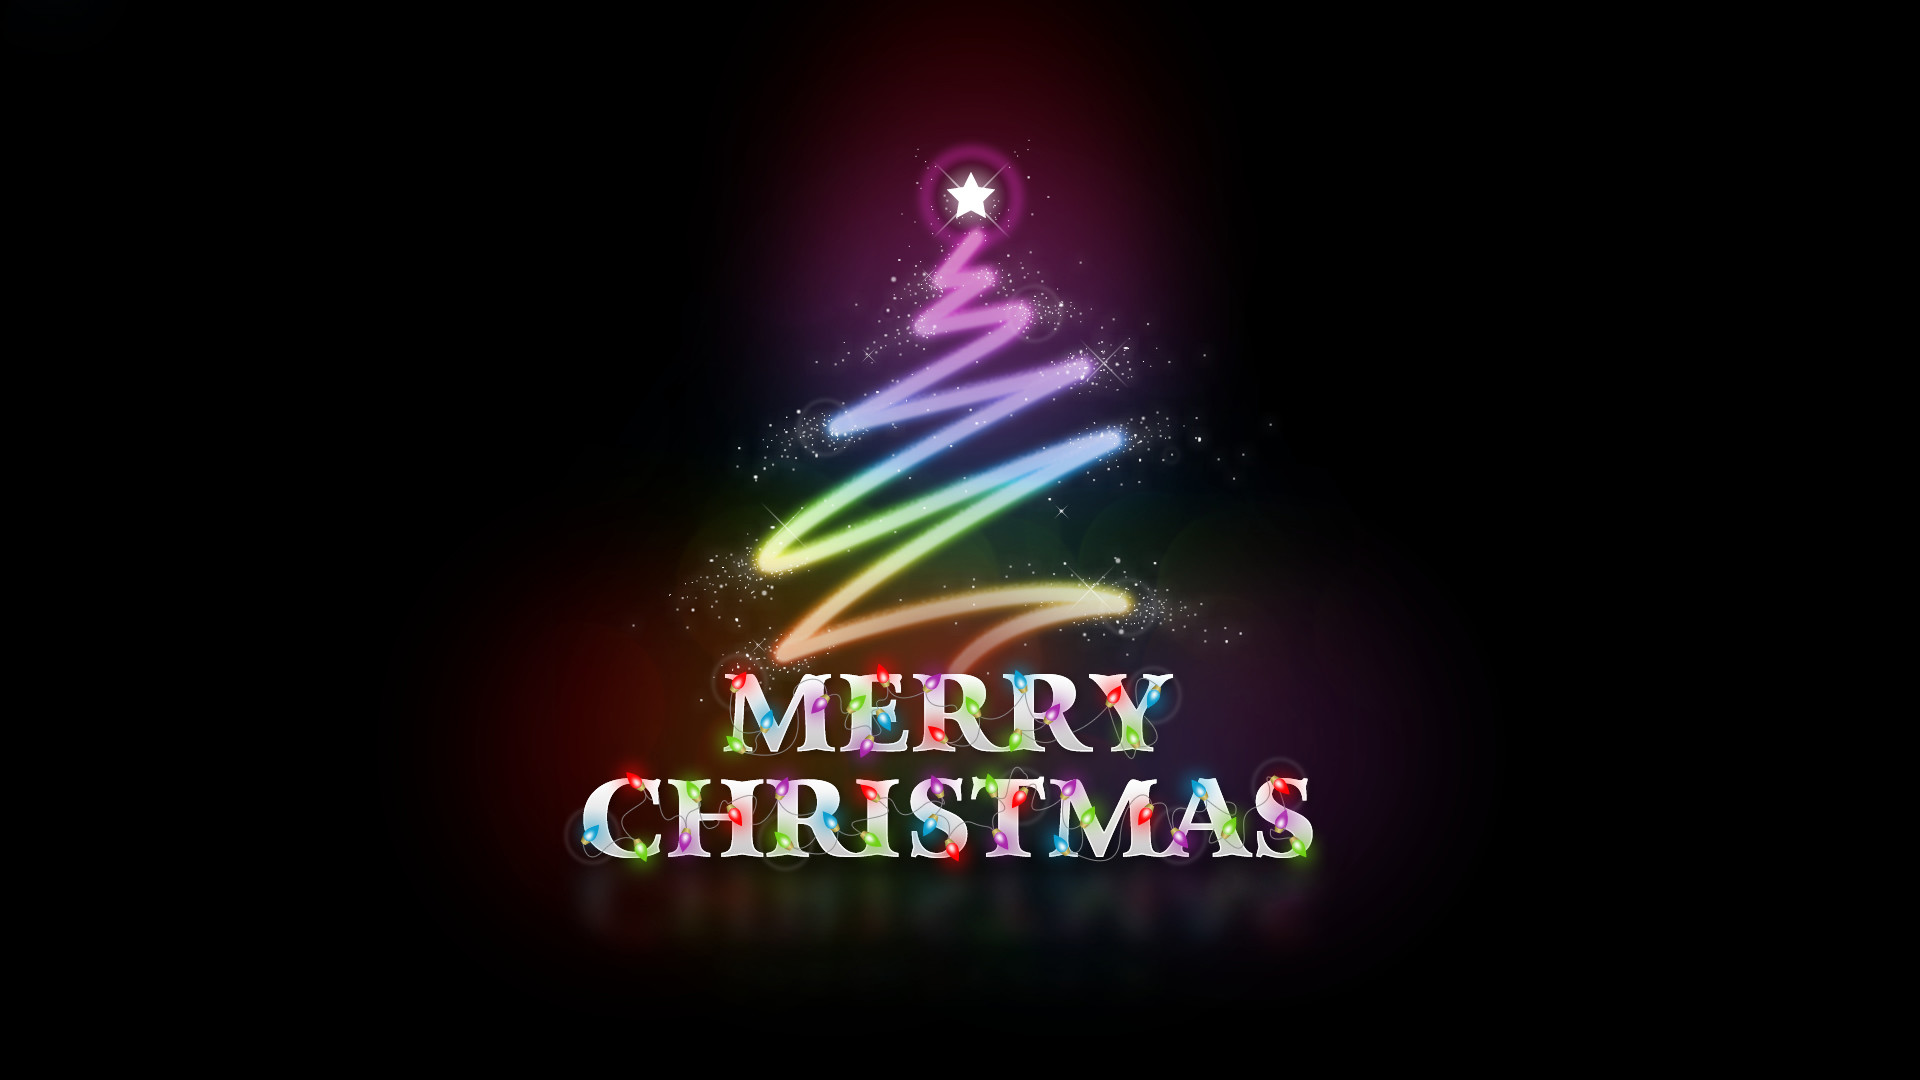 Merry Christmas 1080p HD Wallpapers.